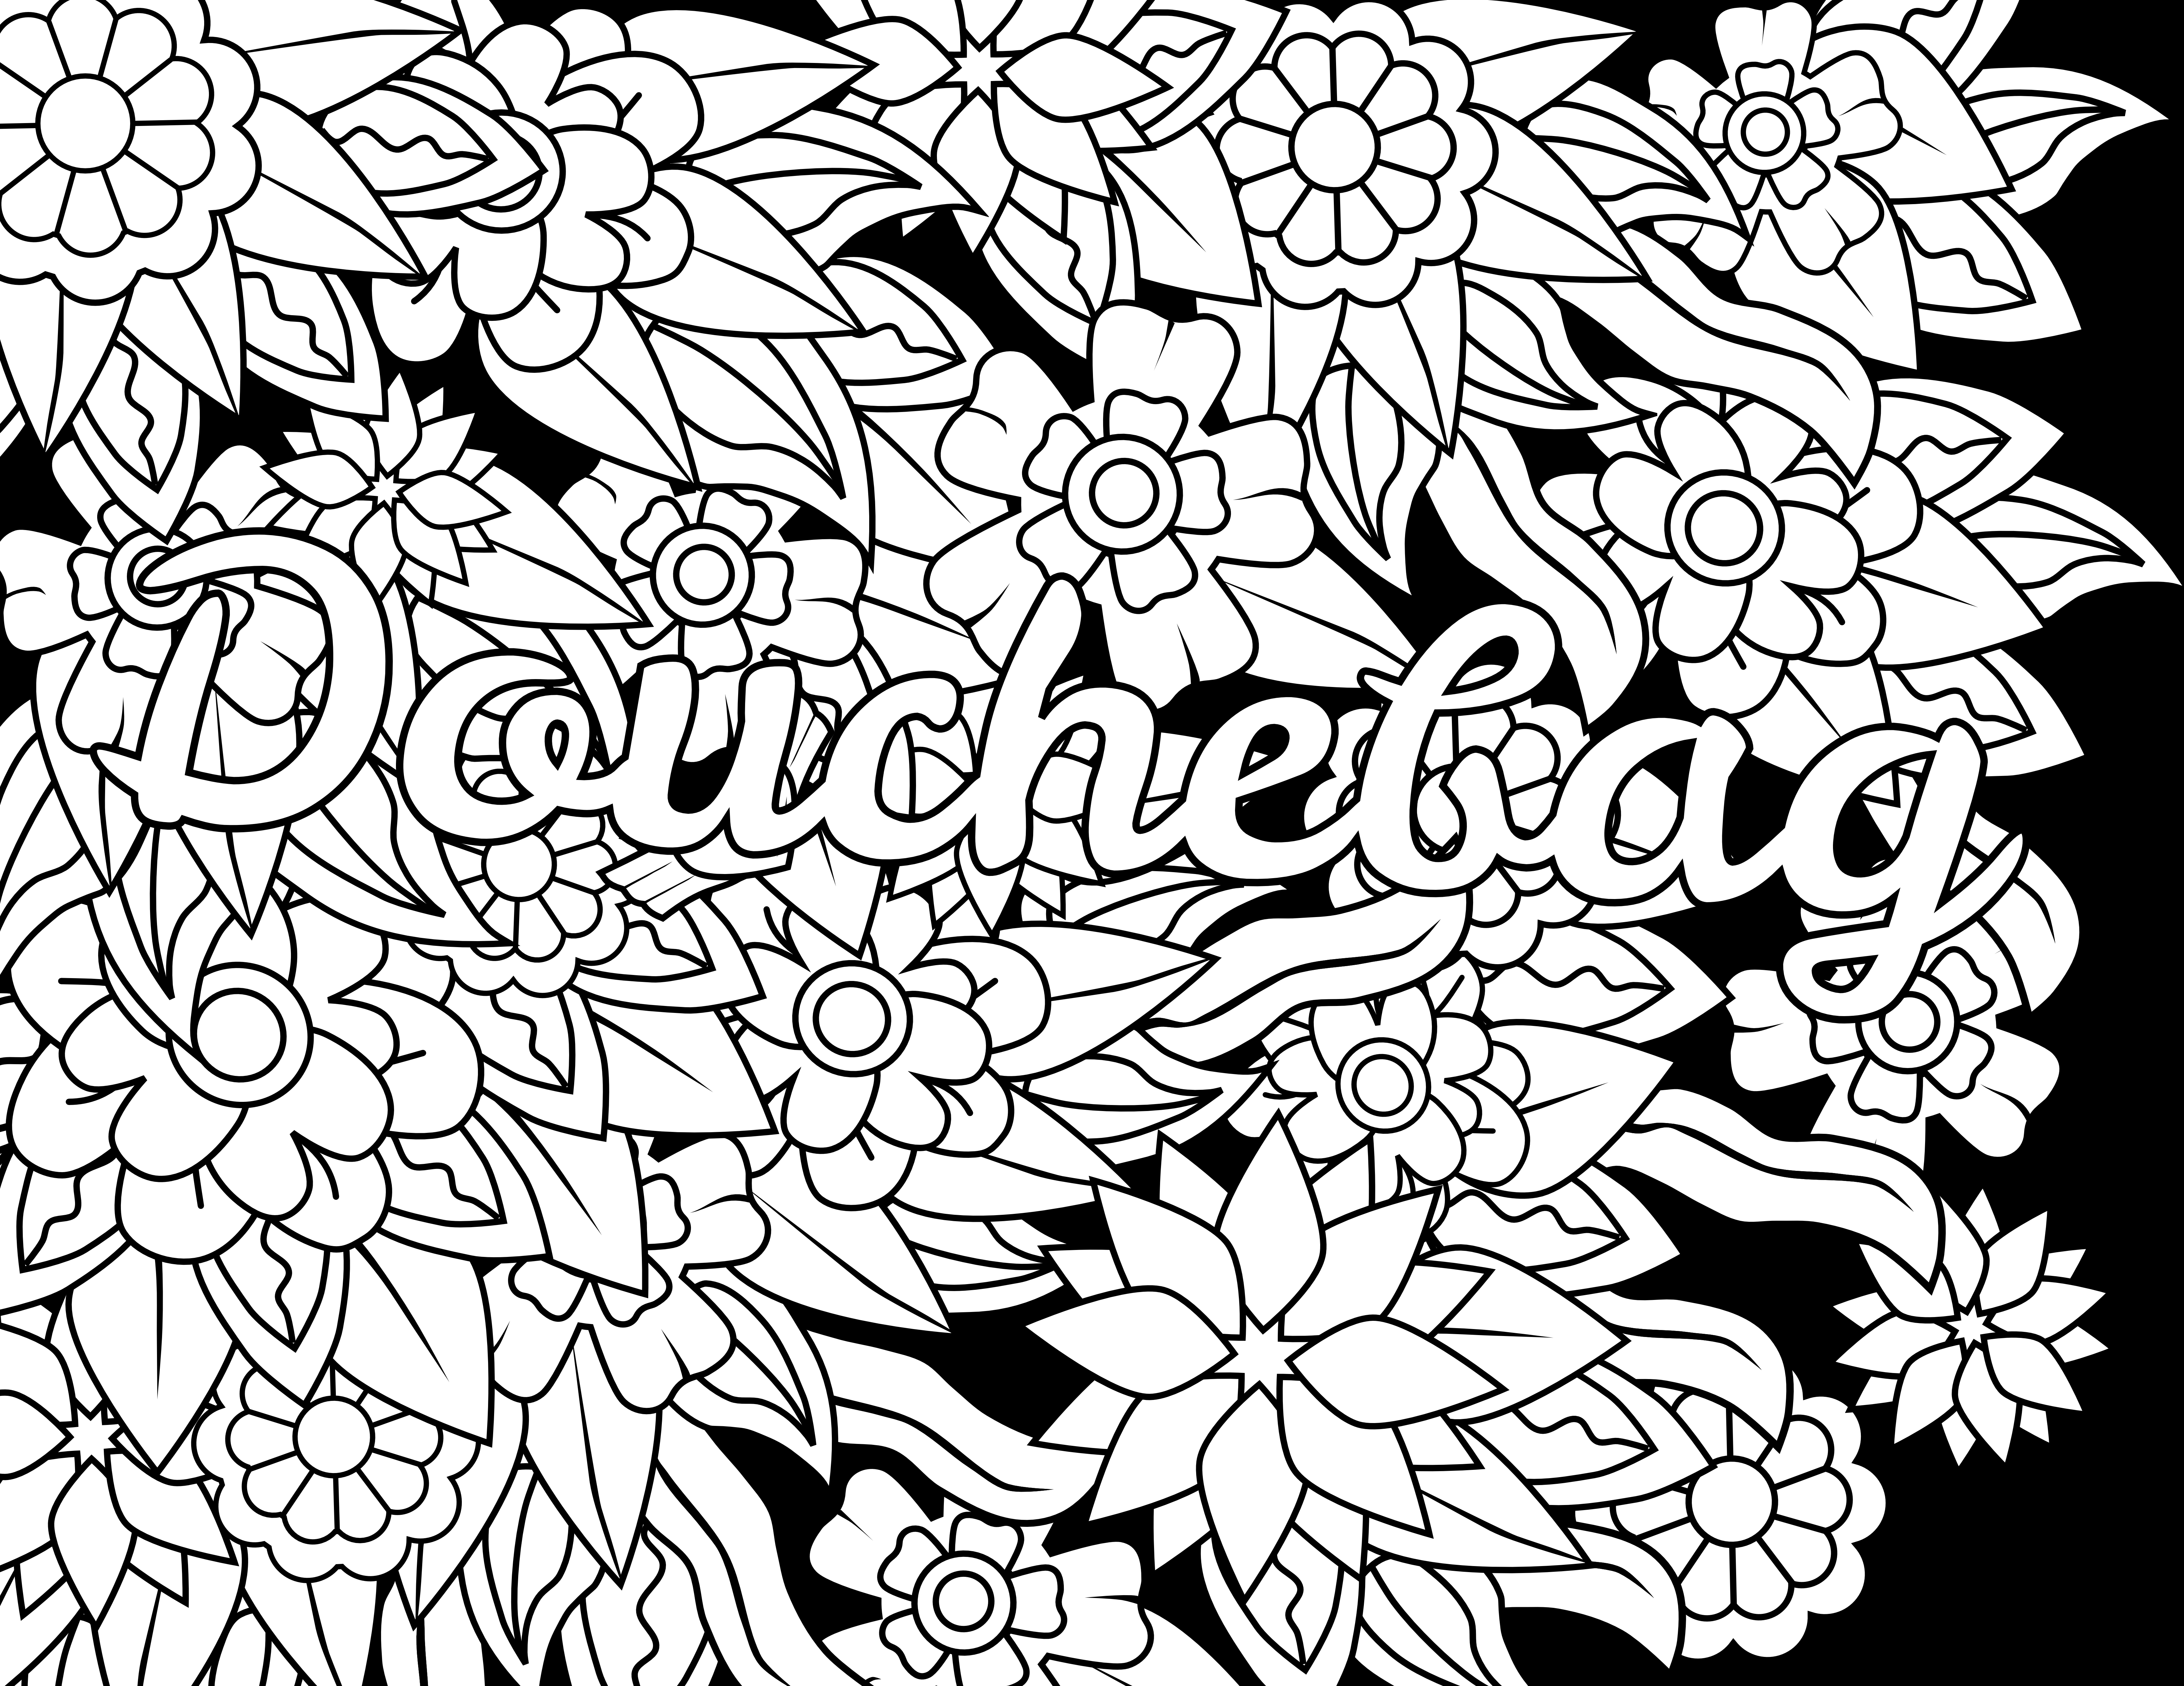 It's just a graphic of Free Printable Cuss Word Coloring Pages with social distancing